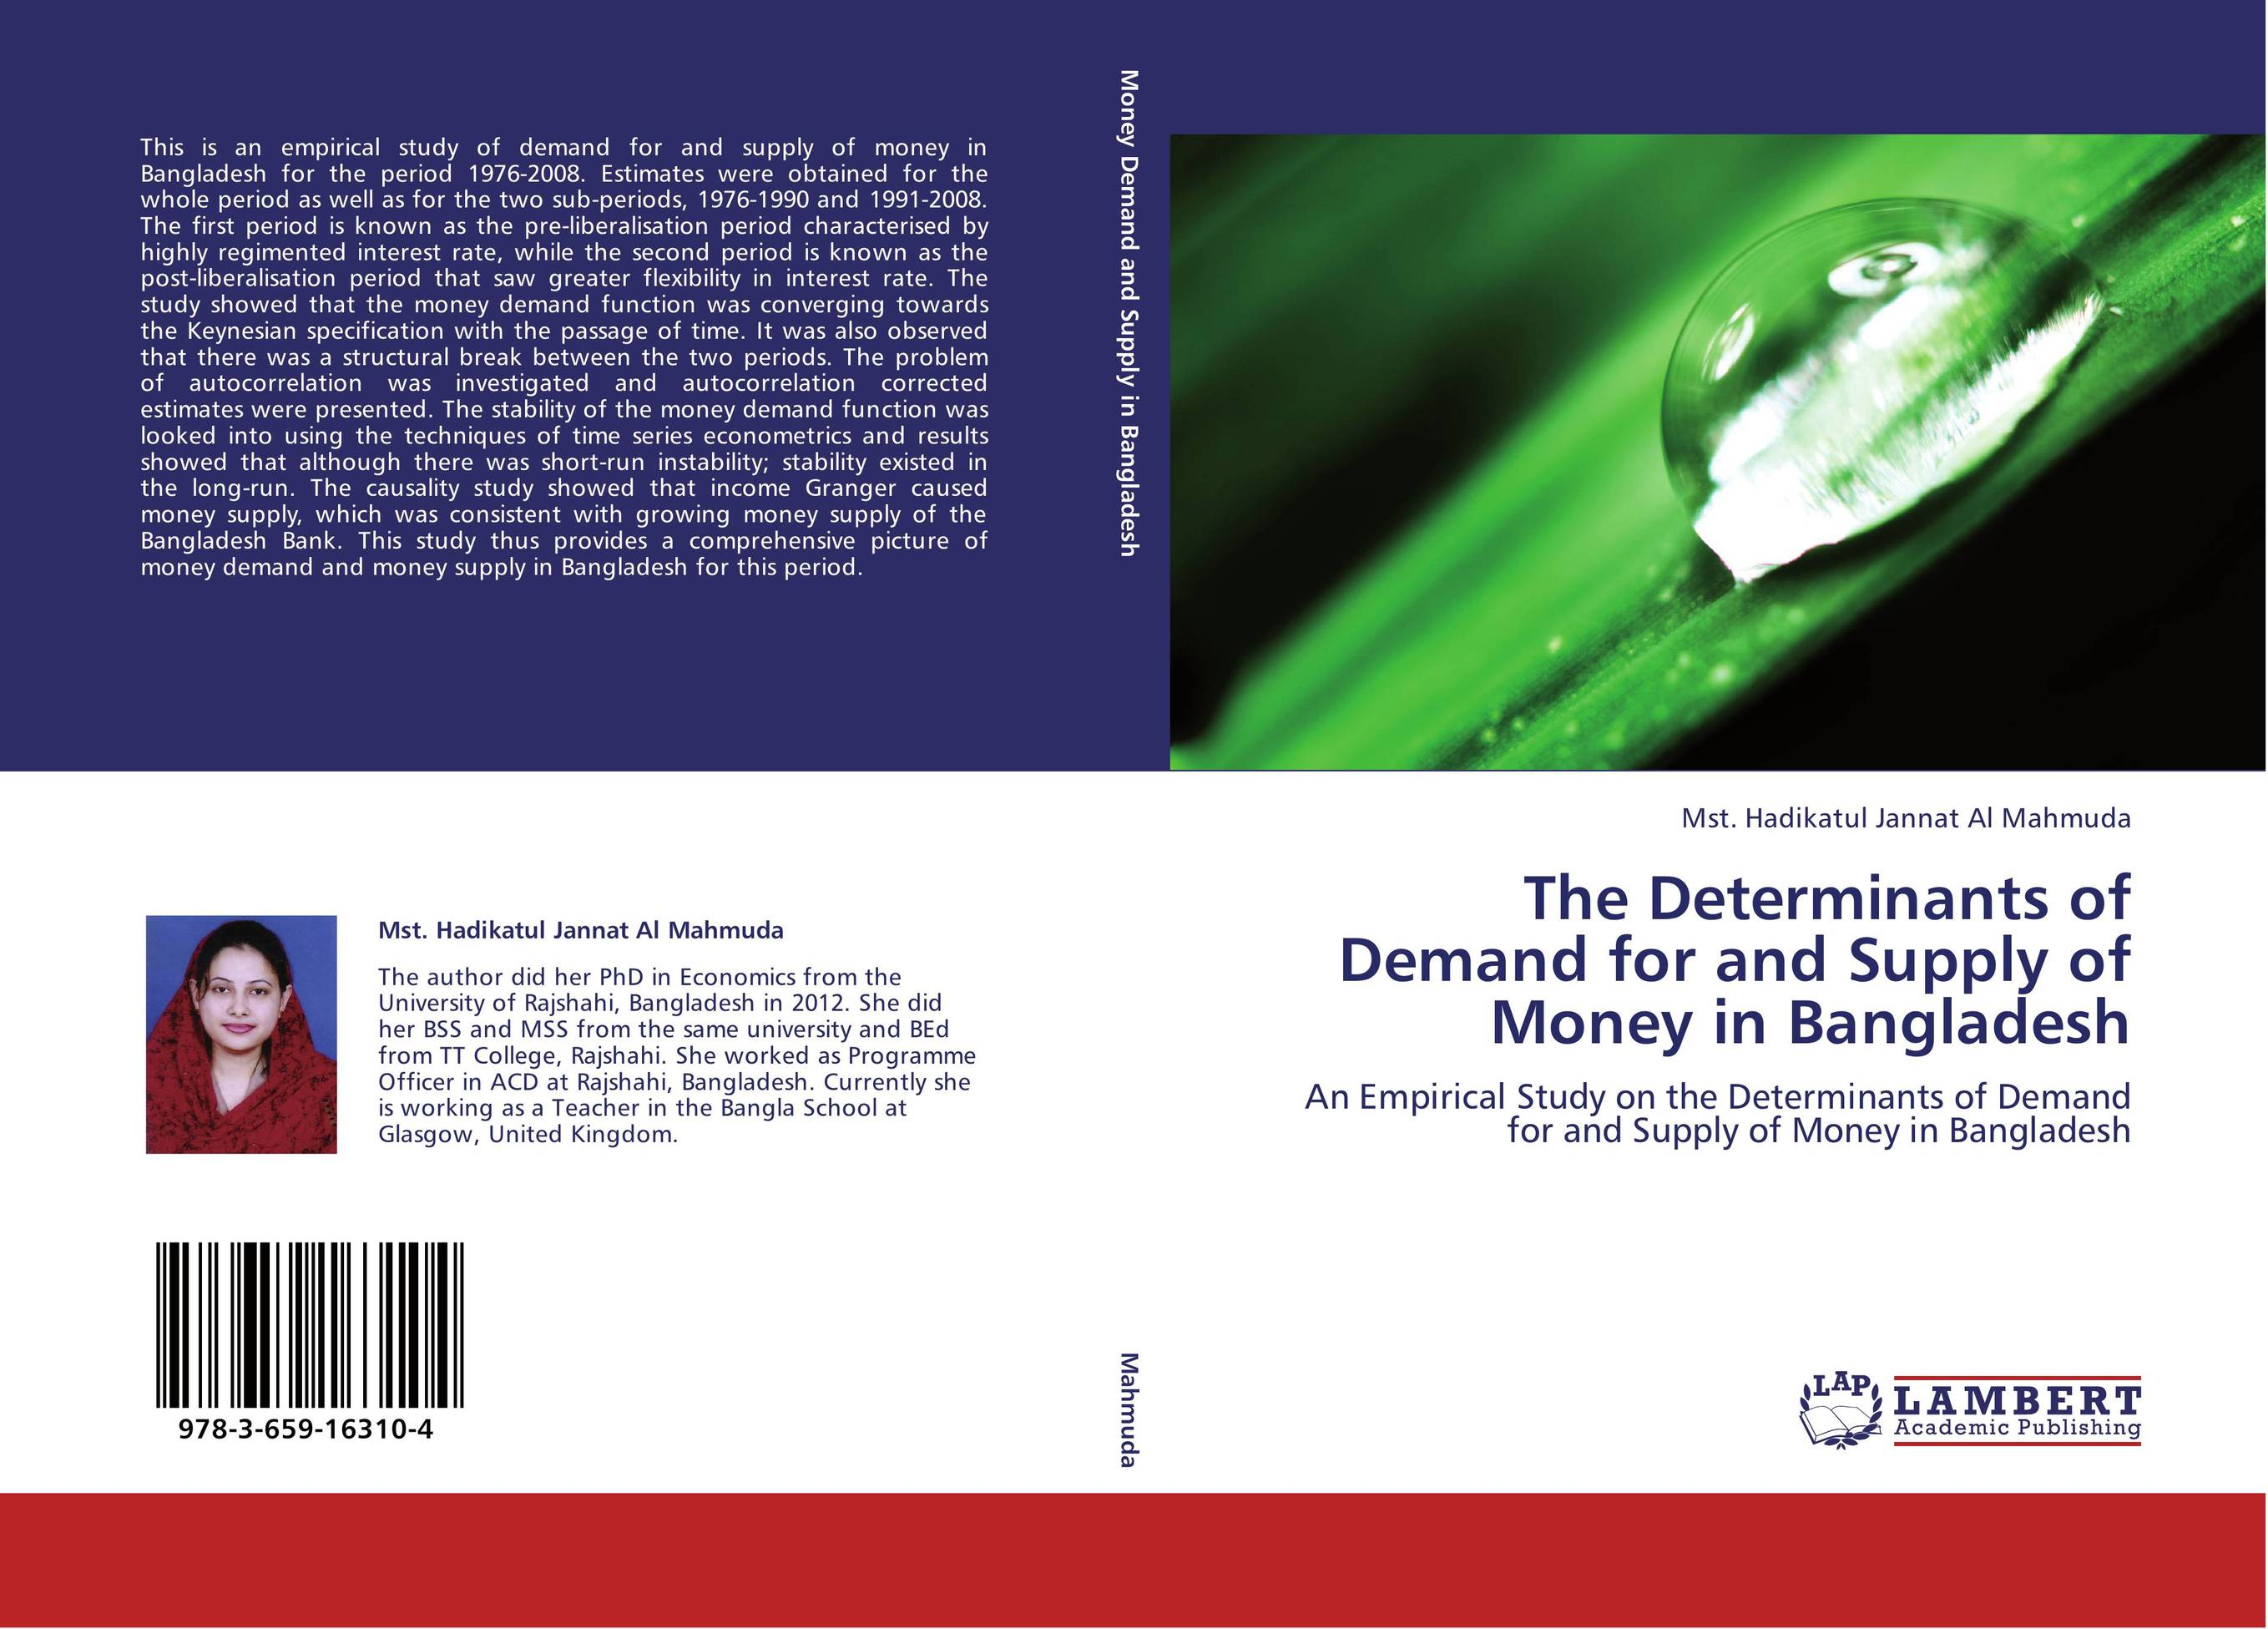 food insecurity in bangladesh economics essay This article is an excellent summary of some of the ciritcal quesitons about food security i have long felt that open markets and an economic apporach to crop seleciton would trump closed markets and a focus on food crops as a means to promote food security.